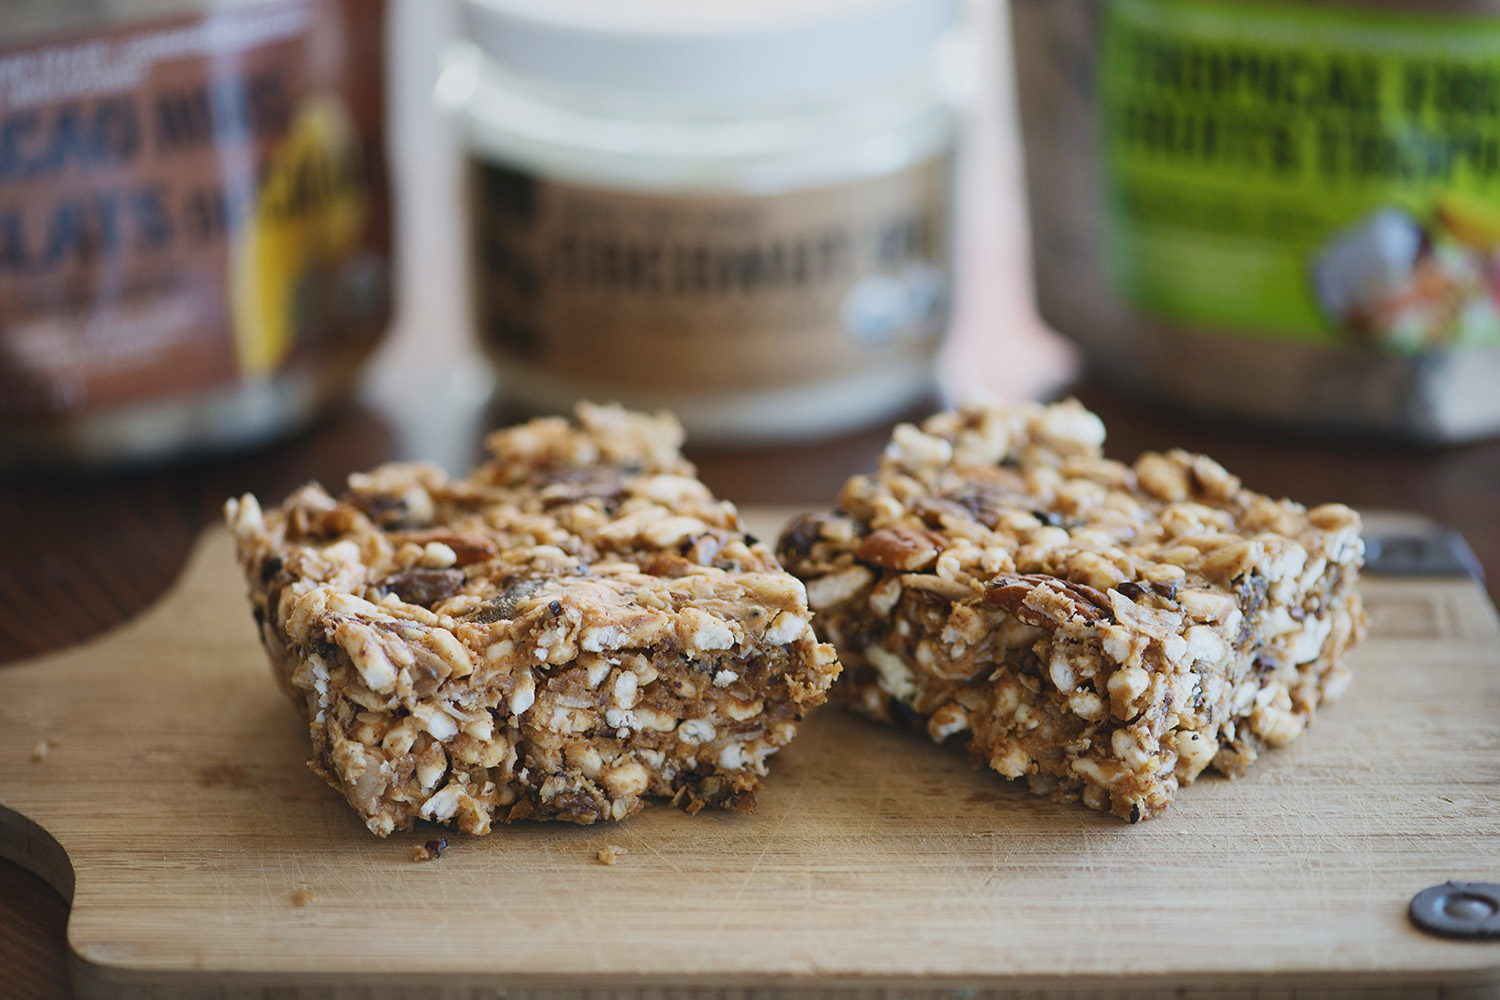 fruit and nut bar with cacao nibs